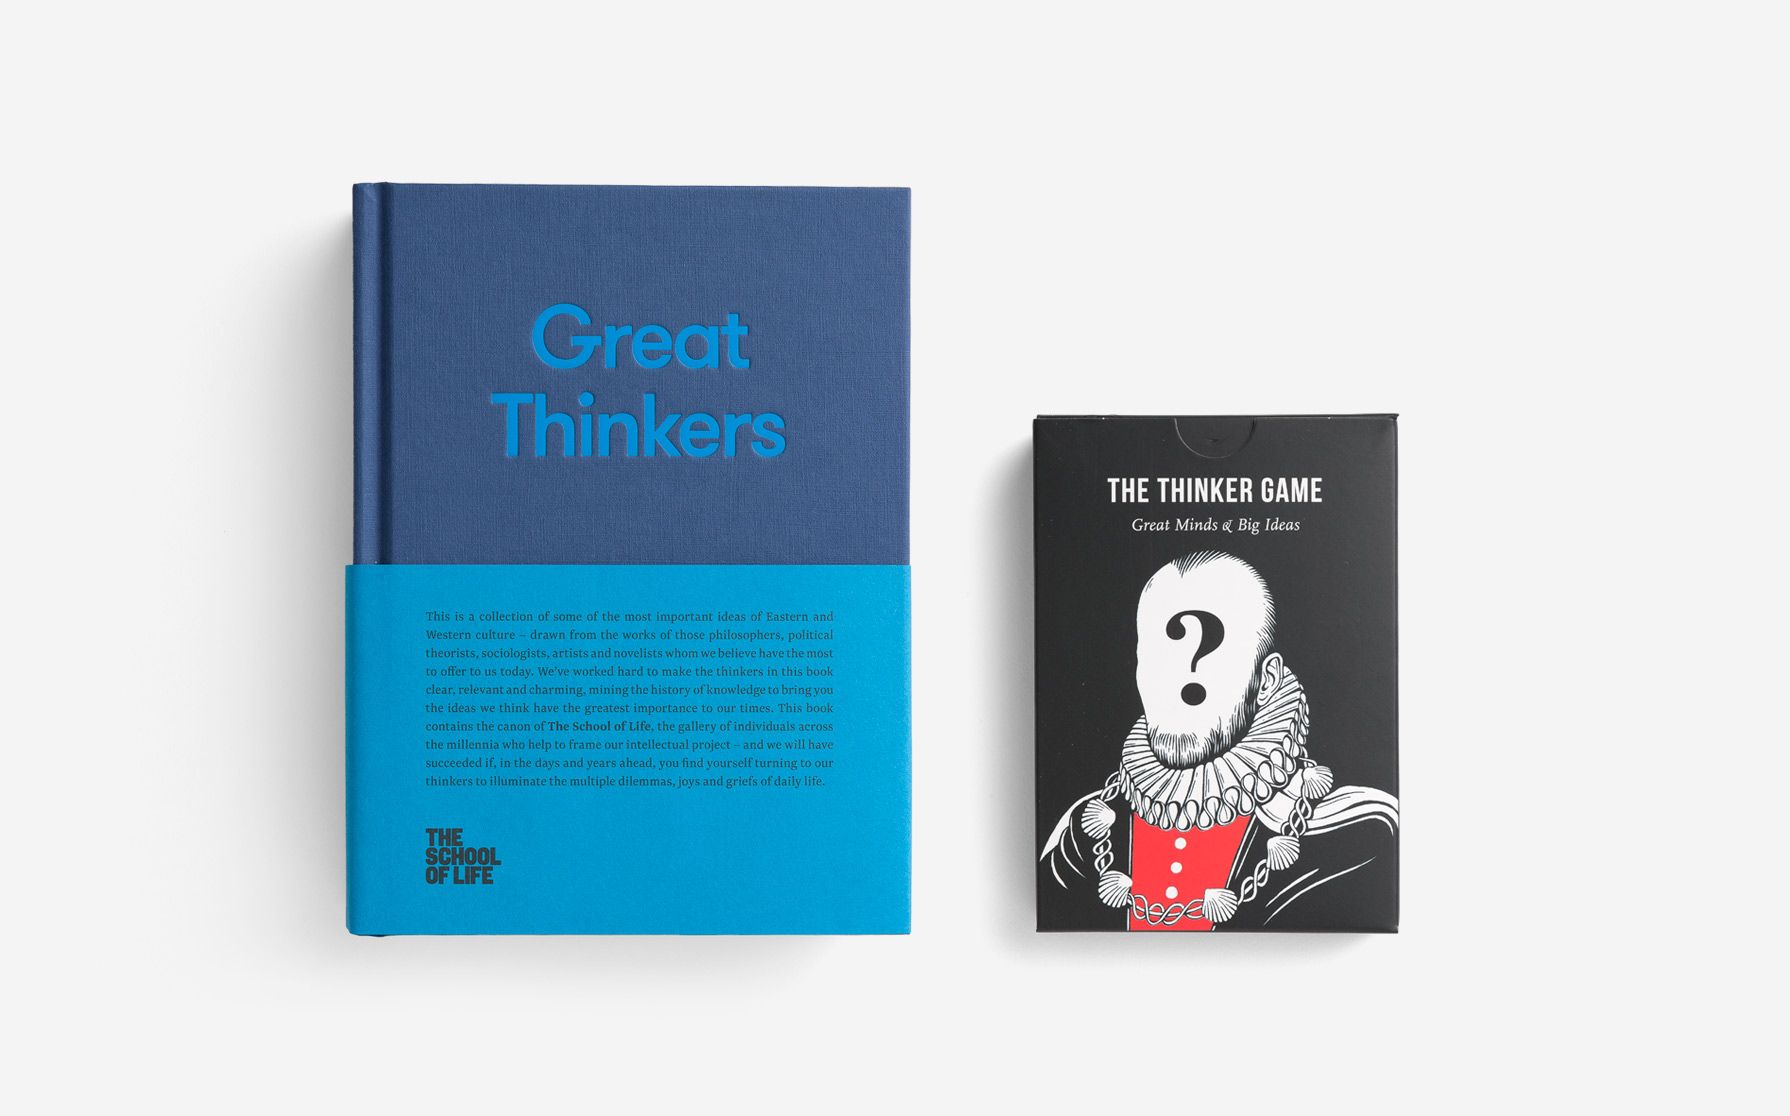 great thinkers card and book set